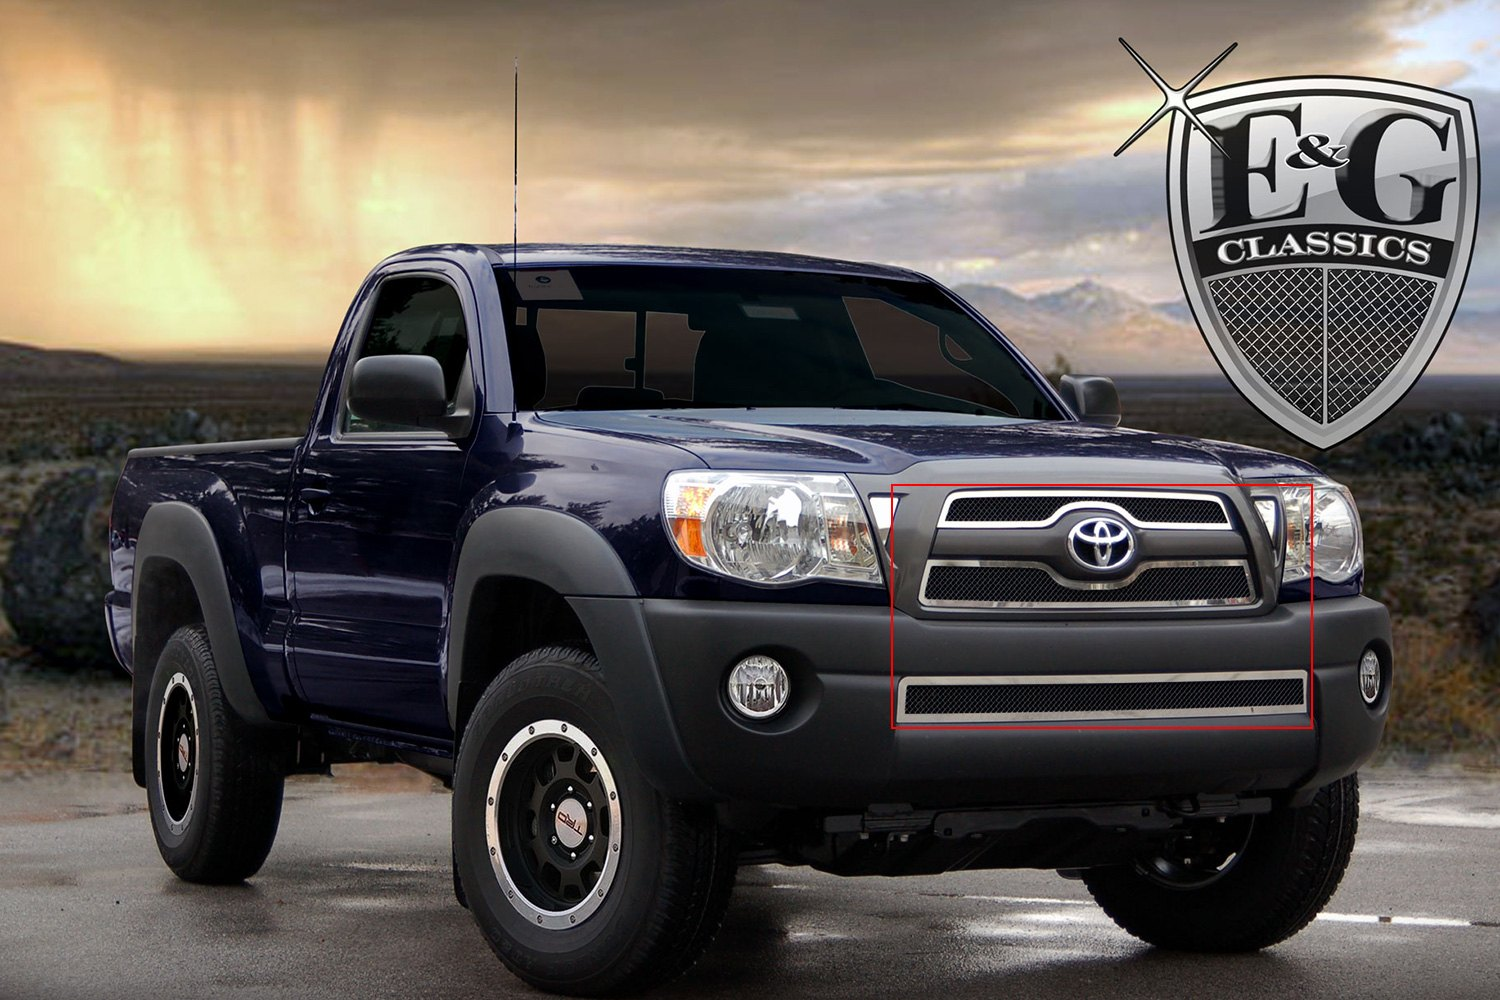 Nissan Nv Mpg Wwwtacomahqcom Toyota Tacoma Accessories Tacoma Reviews | Autos Post